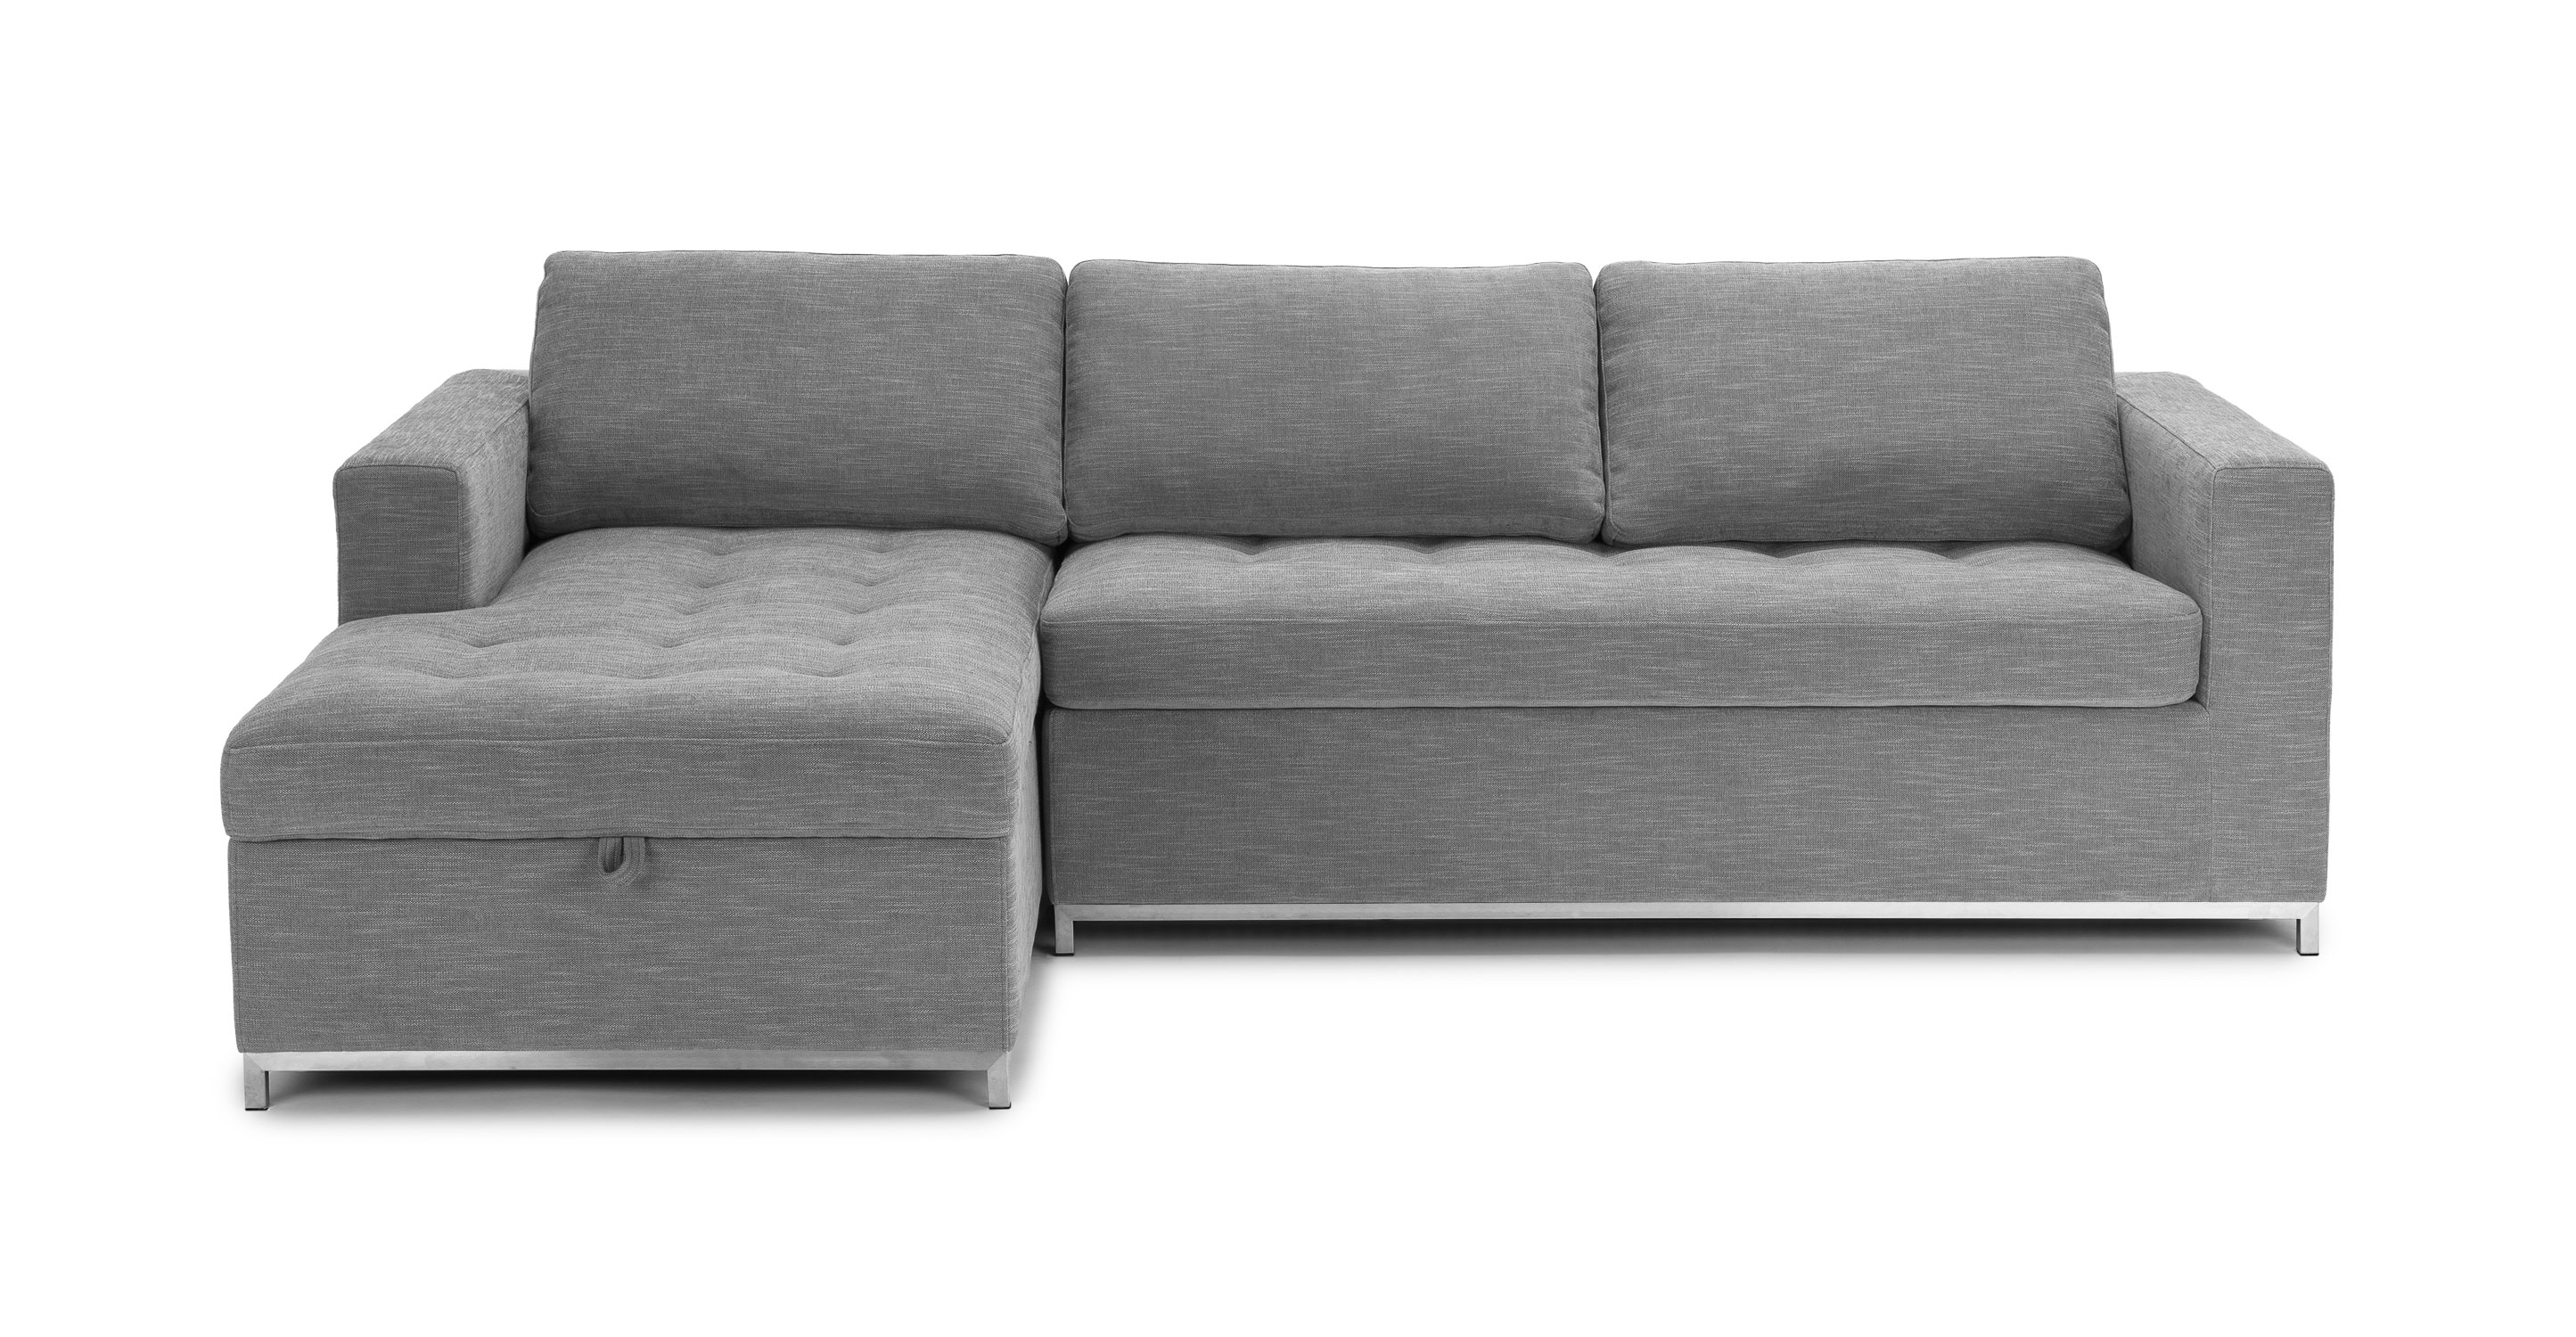 Best Kitchen Gallery: Soma Dawn Gray Left Sofa Bed Sectionals Article Modern Mid of Sofa Bed  on rachelxblog.com